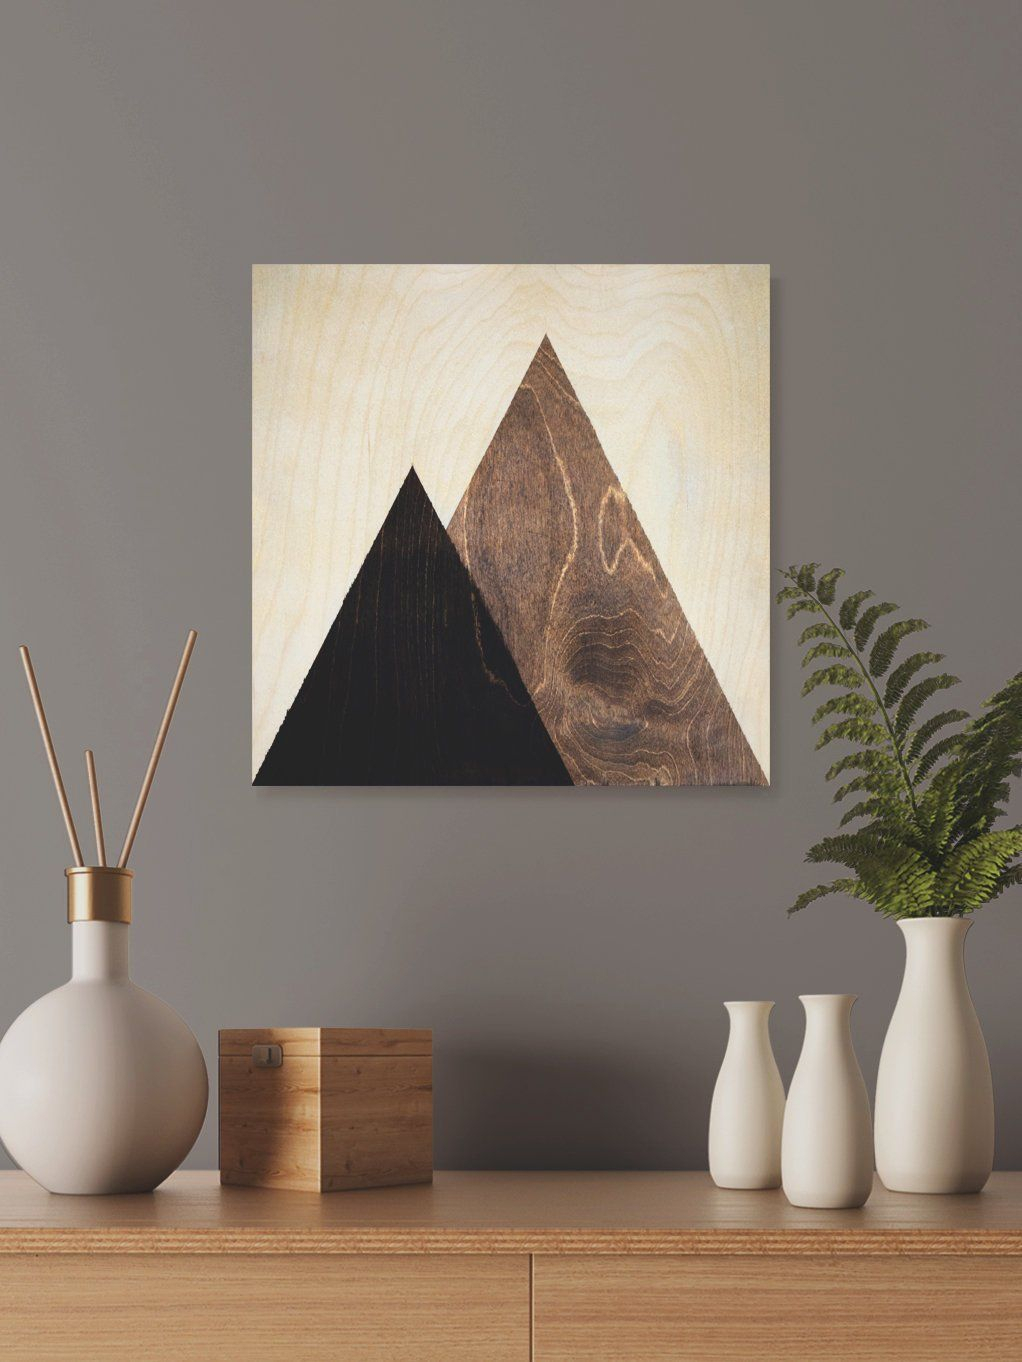 Contemporary Mountain Wall Decor, Dorm Wall Hanging Gift inside Contemporary Geometric Wall Decor (Image 11 of 30)